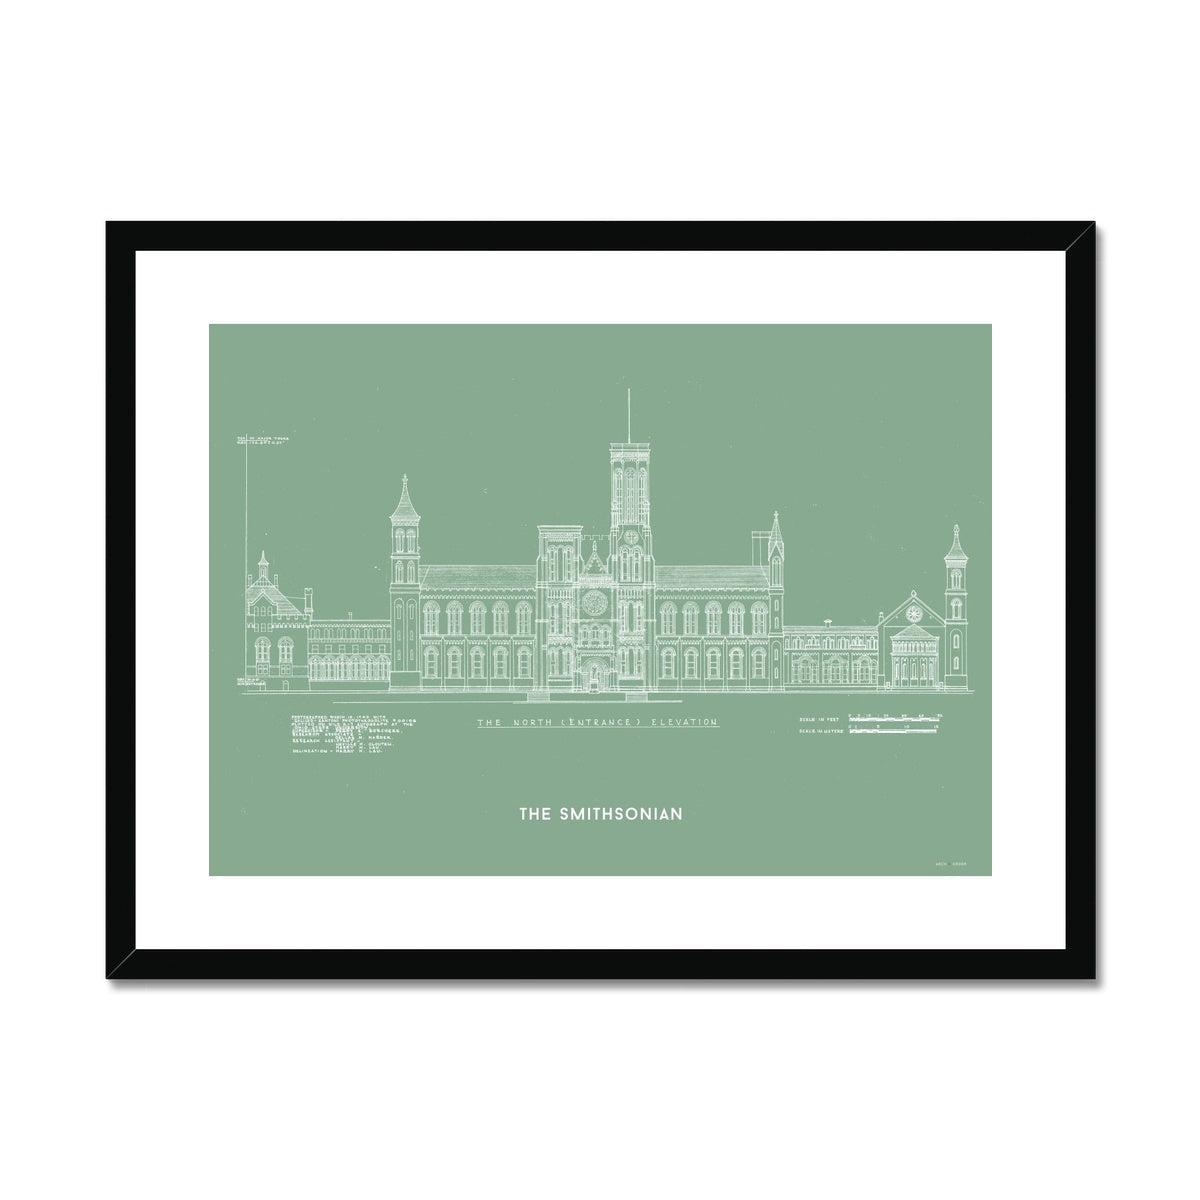 The Smithsonian North Elevation - Green -  Framed & Mounted Print